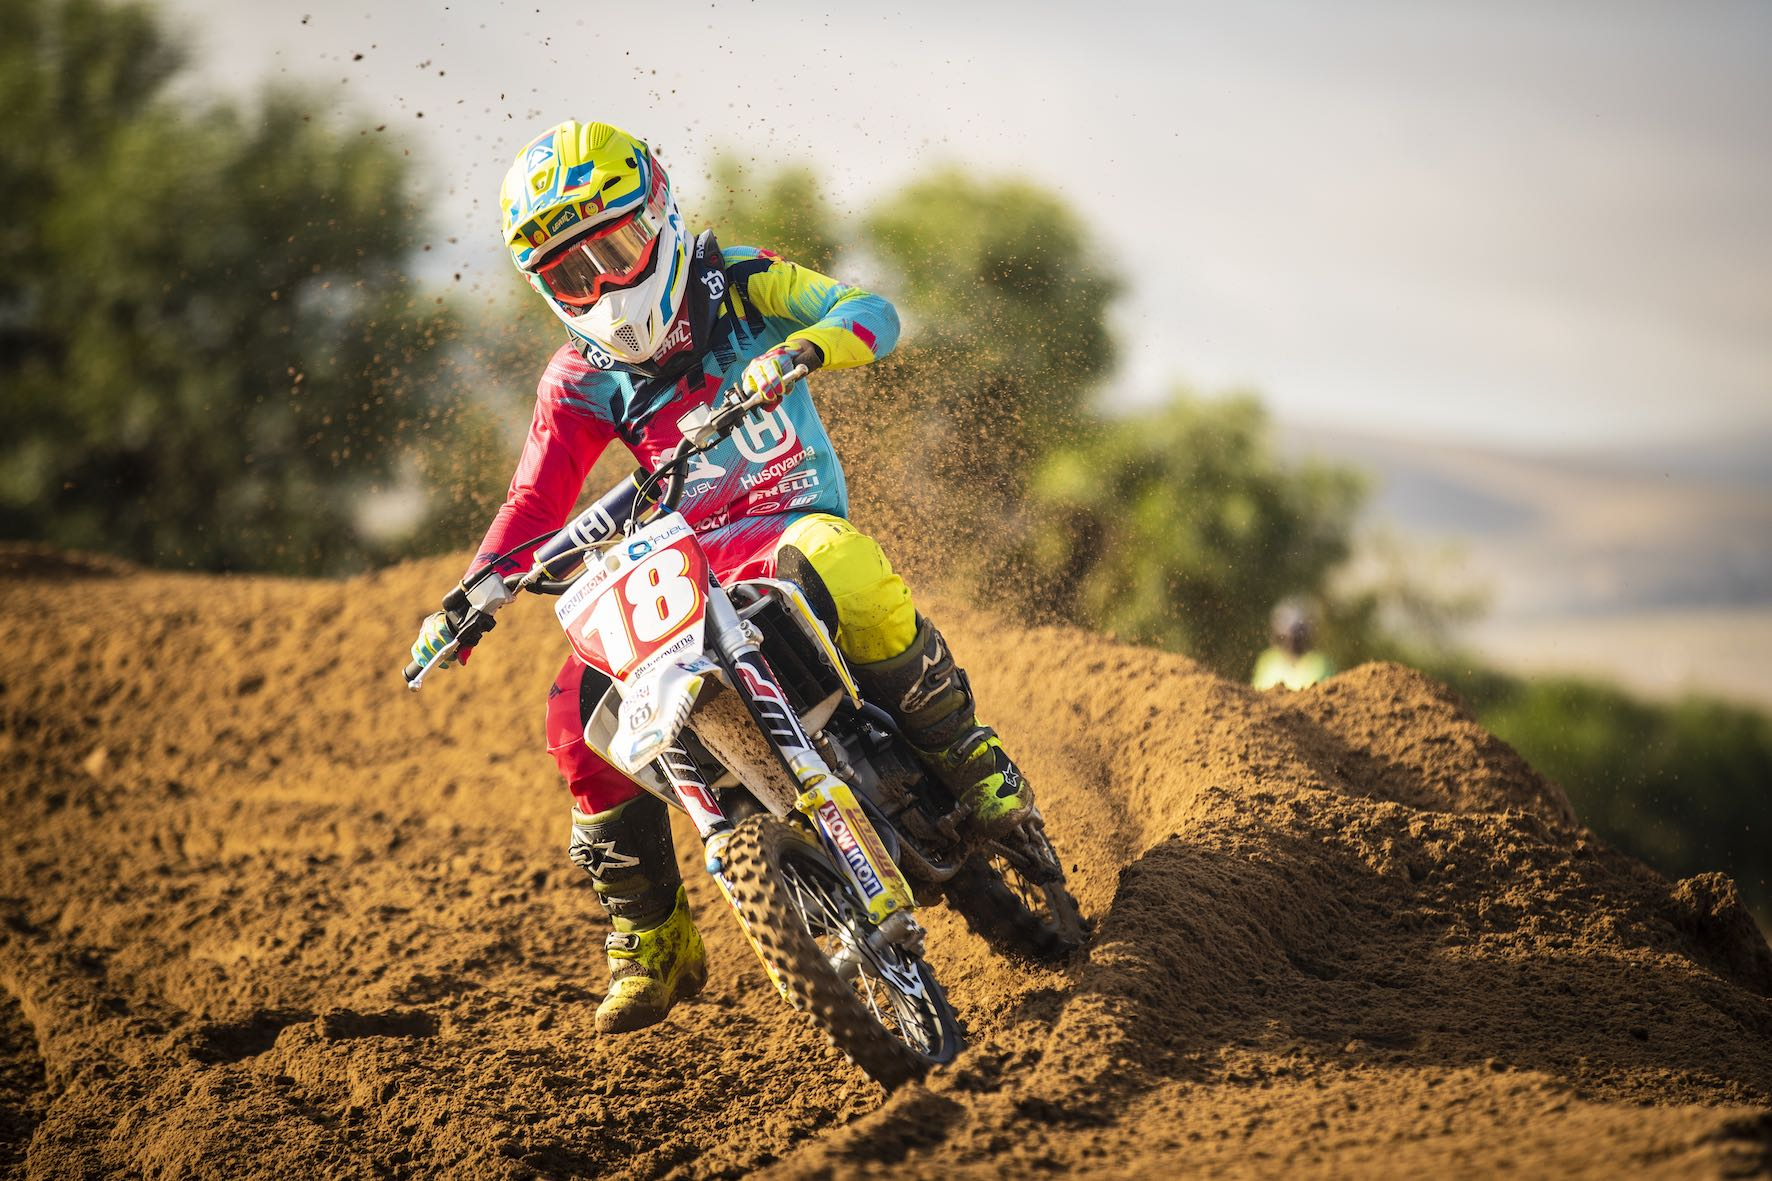 Niel van der Vyver racing the Motocross Nationals